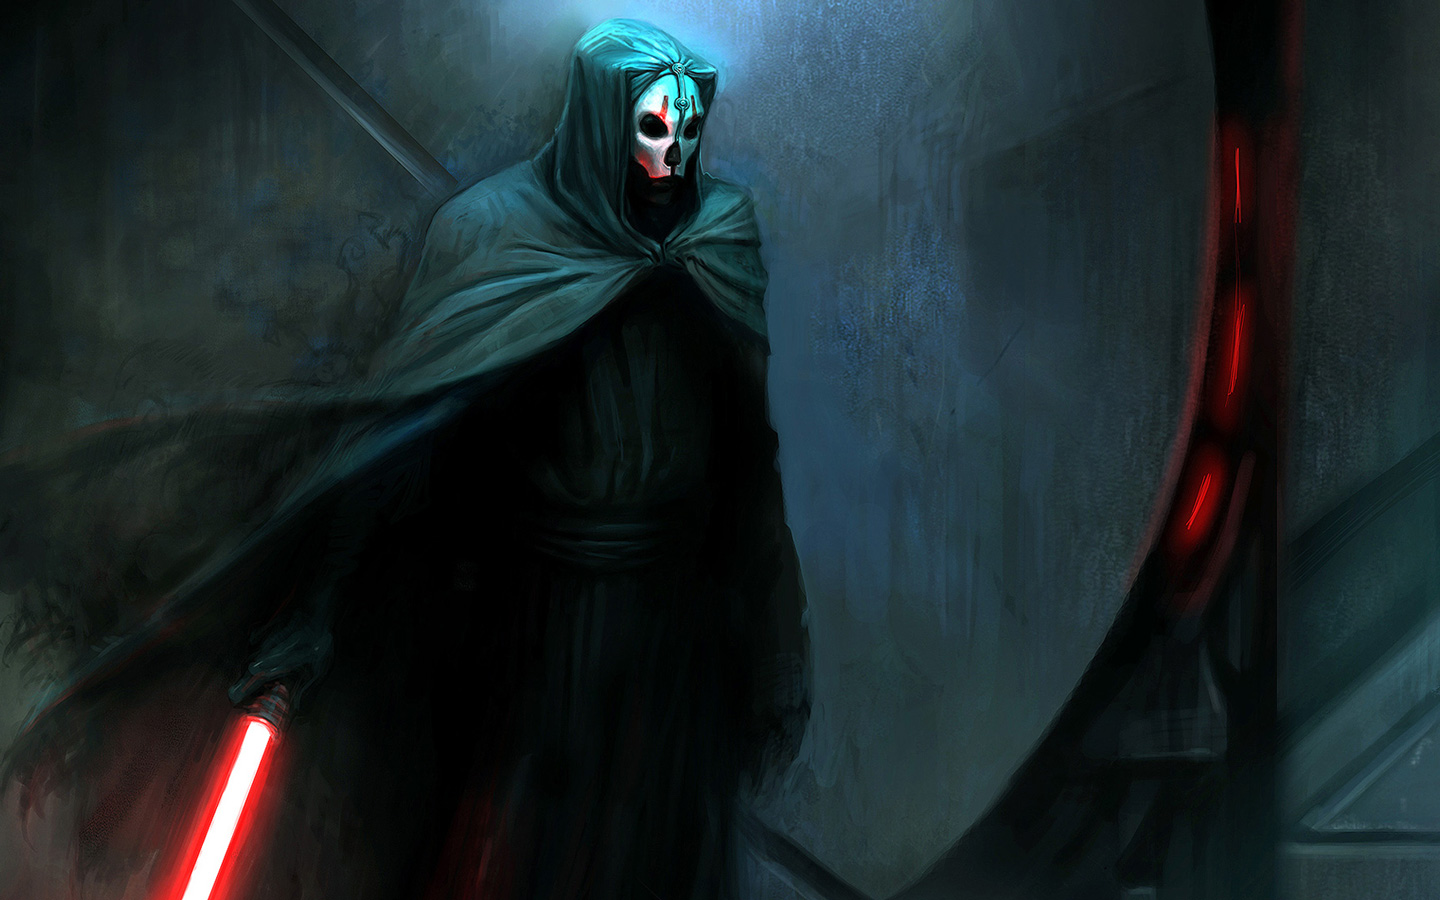 Star Wars: Knights of the Old Republic II � The Sith Lords Wallpaper in 1440x900